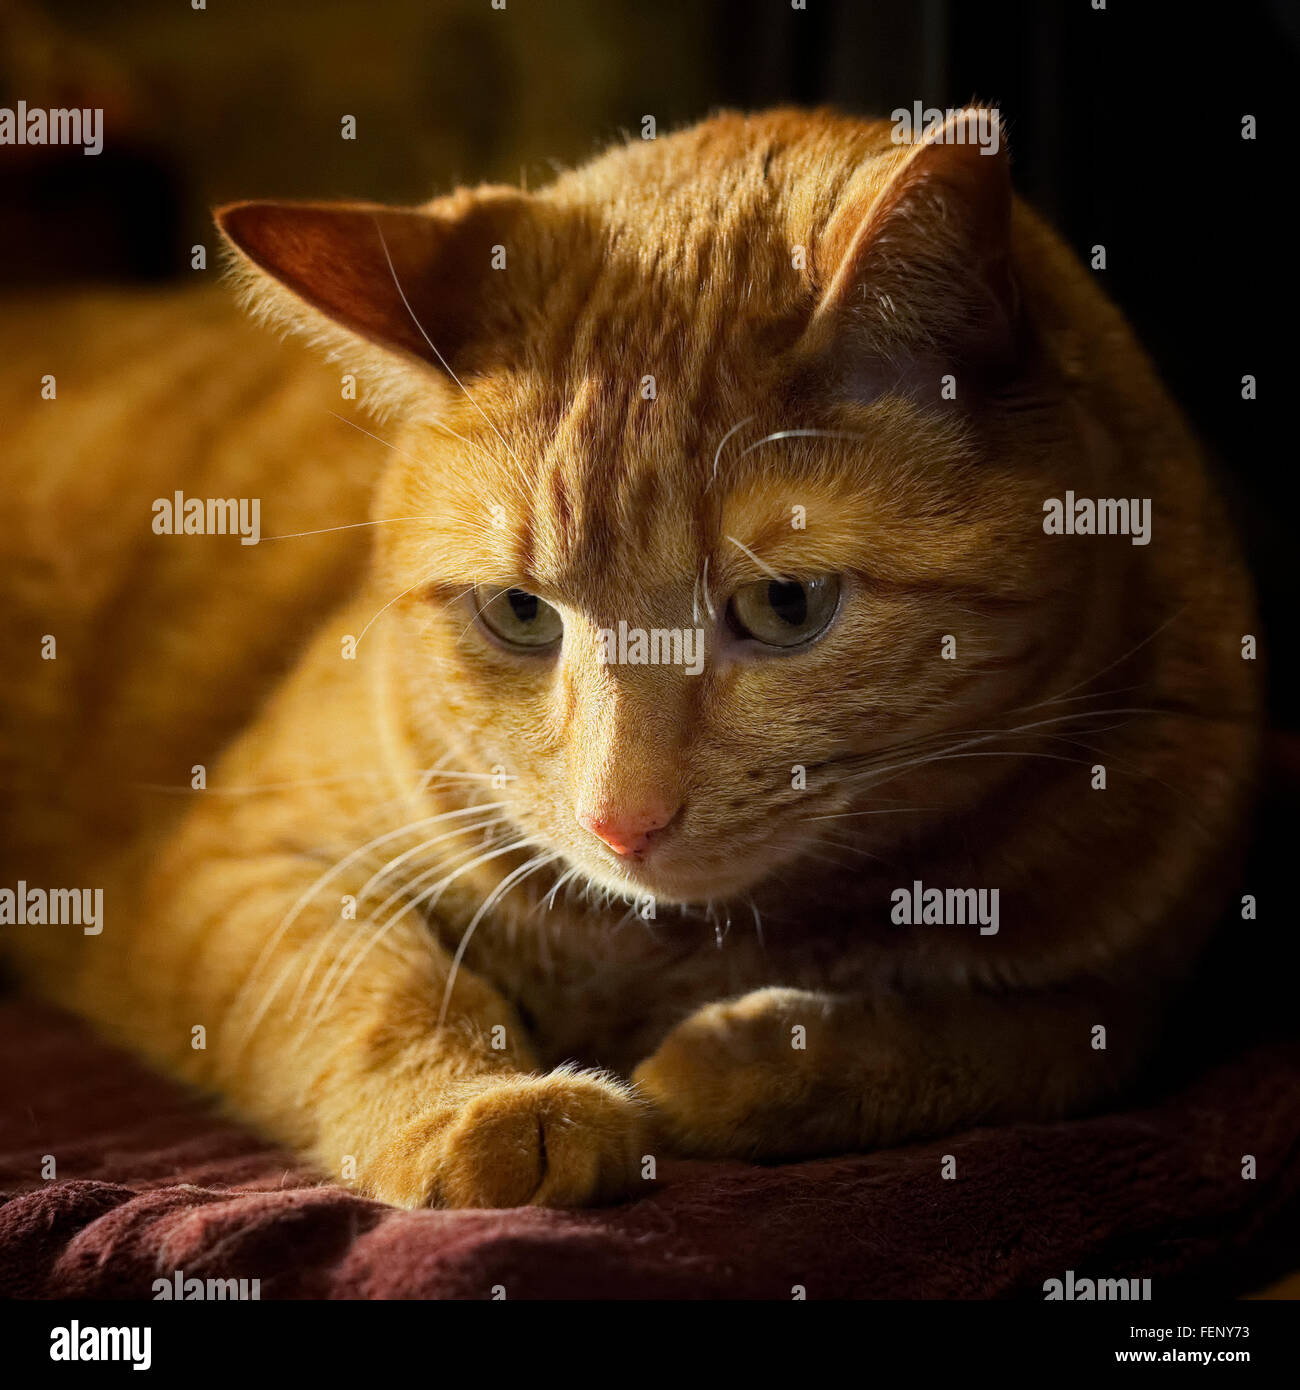 Tabby cat resting on pad with evening sun coming in from window - Stock Image